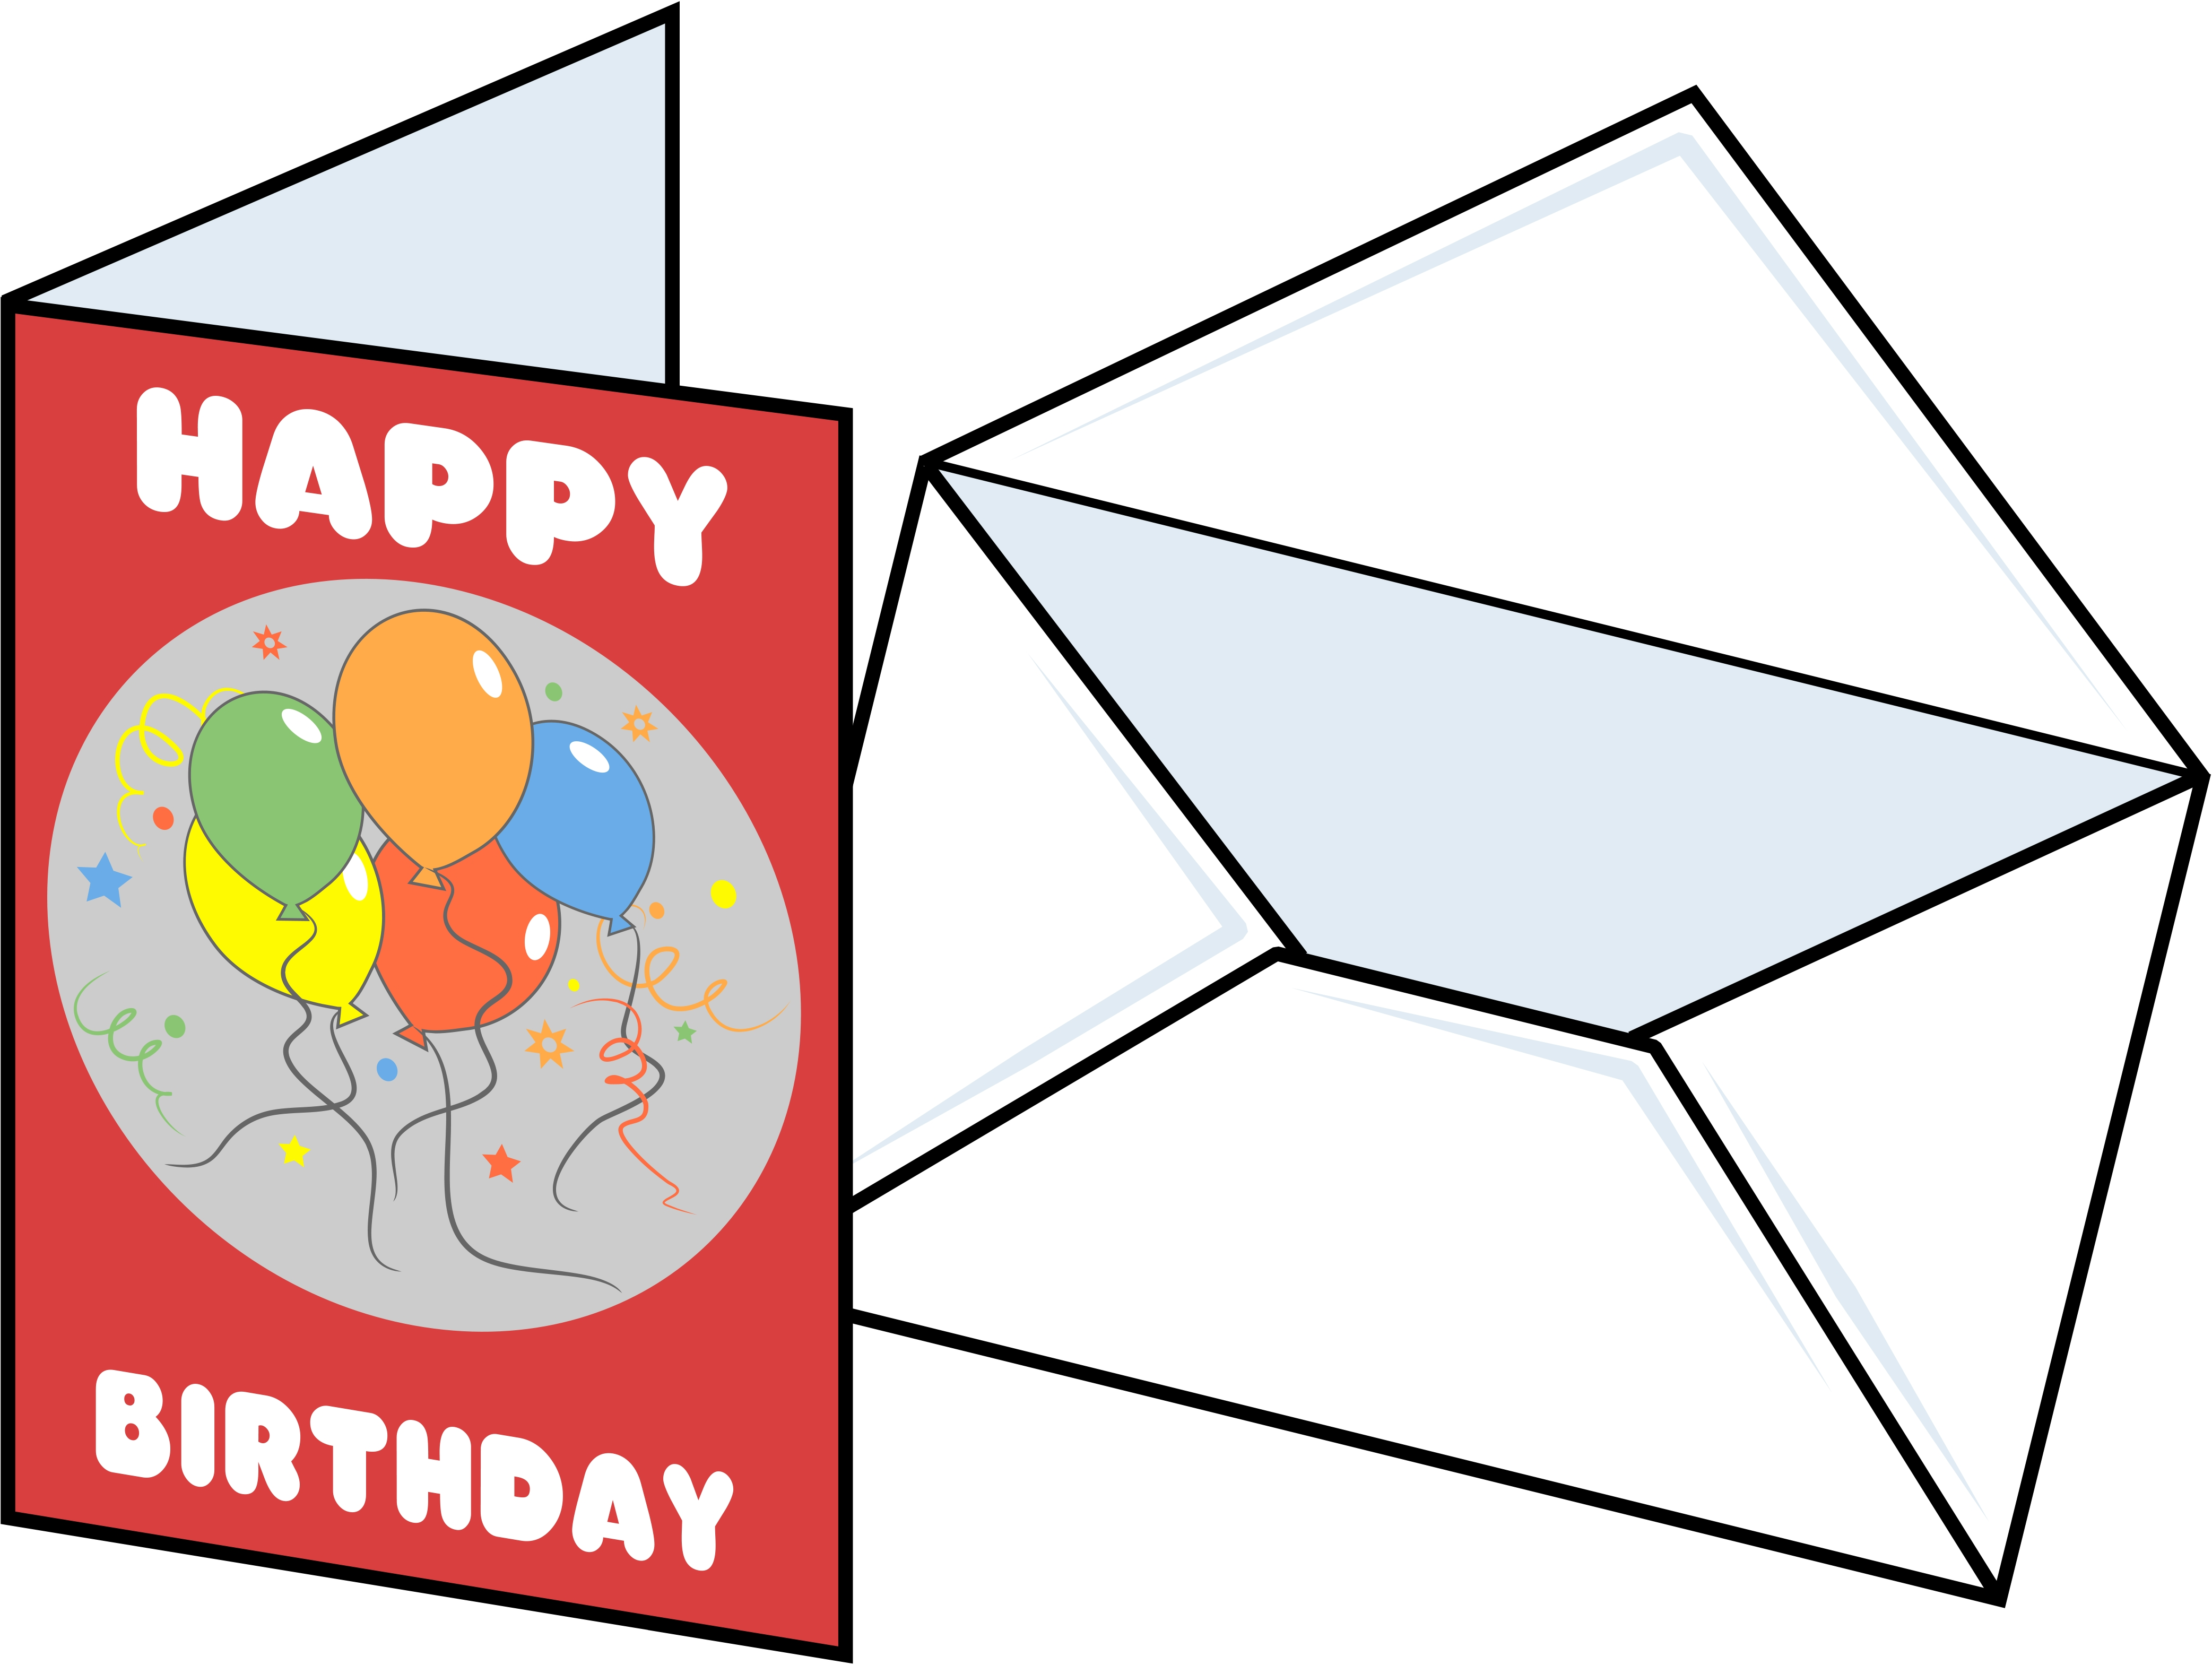 Card clipart at getdrawings free for personal use card clipart 4169x3138 clip art blank cards clipart m4hsunfo